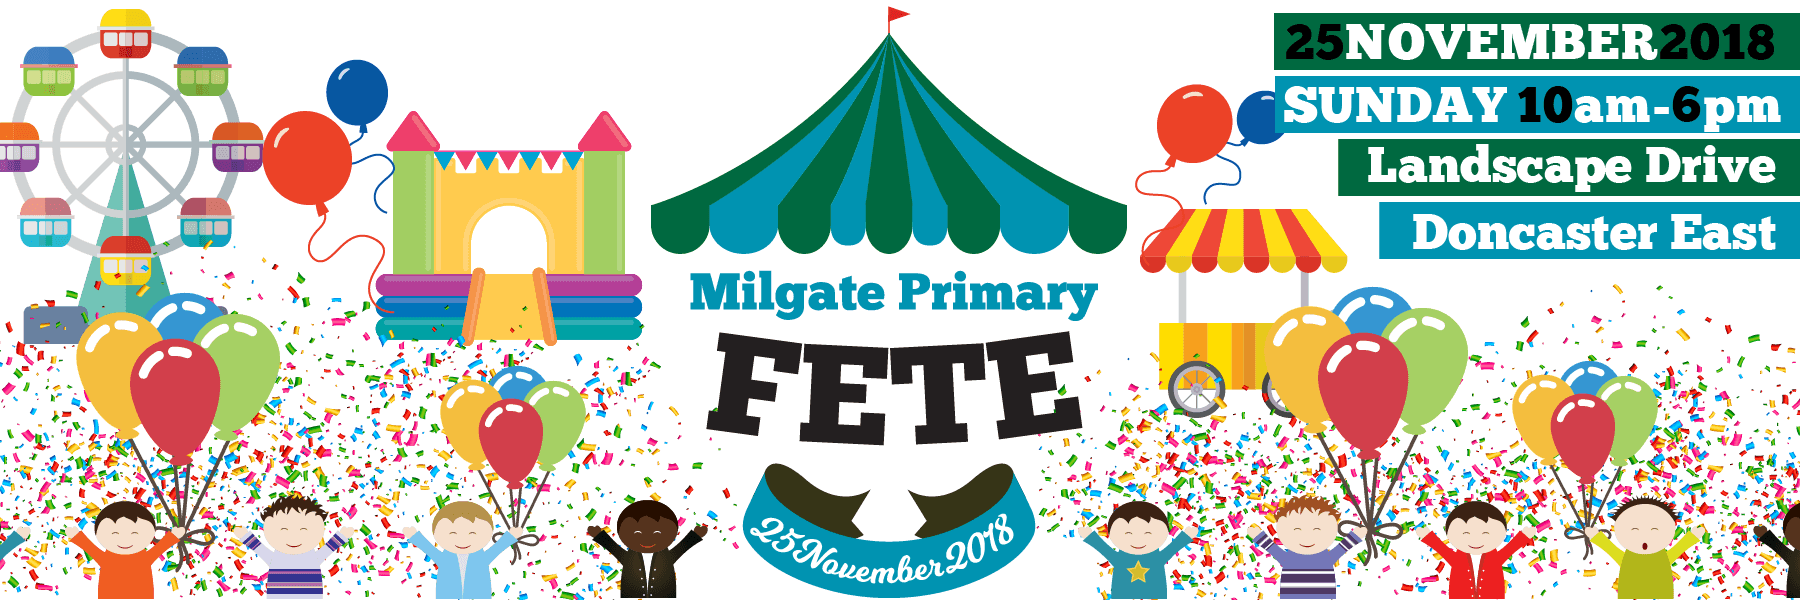 Milgate Primary School | IB World School | East Doncaster | Fete 2018